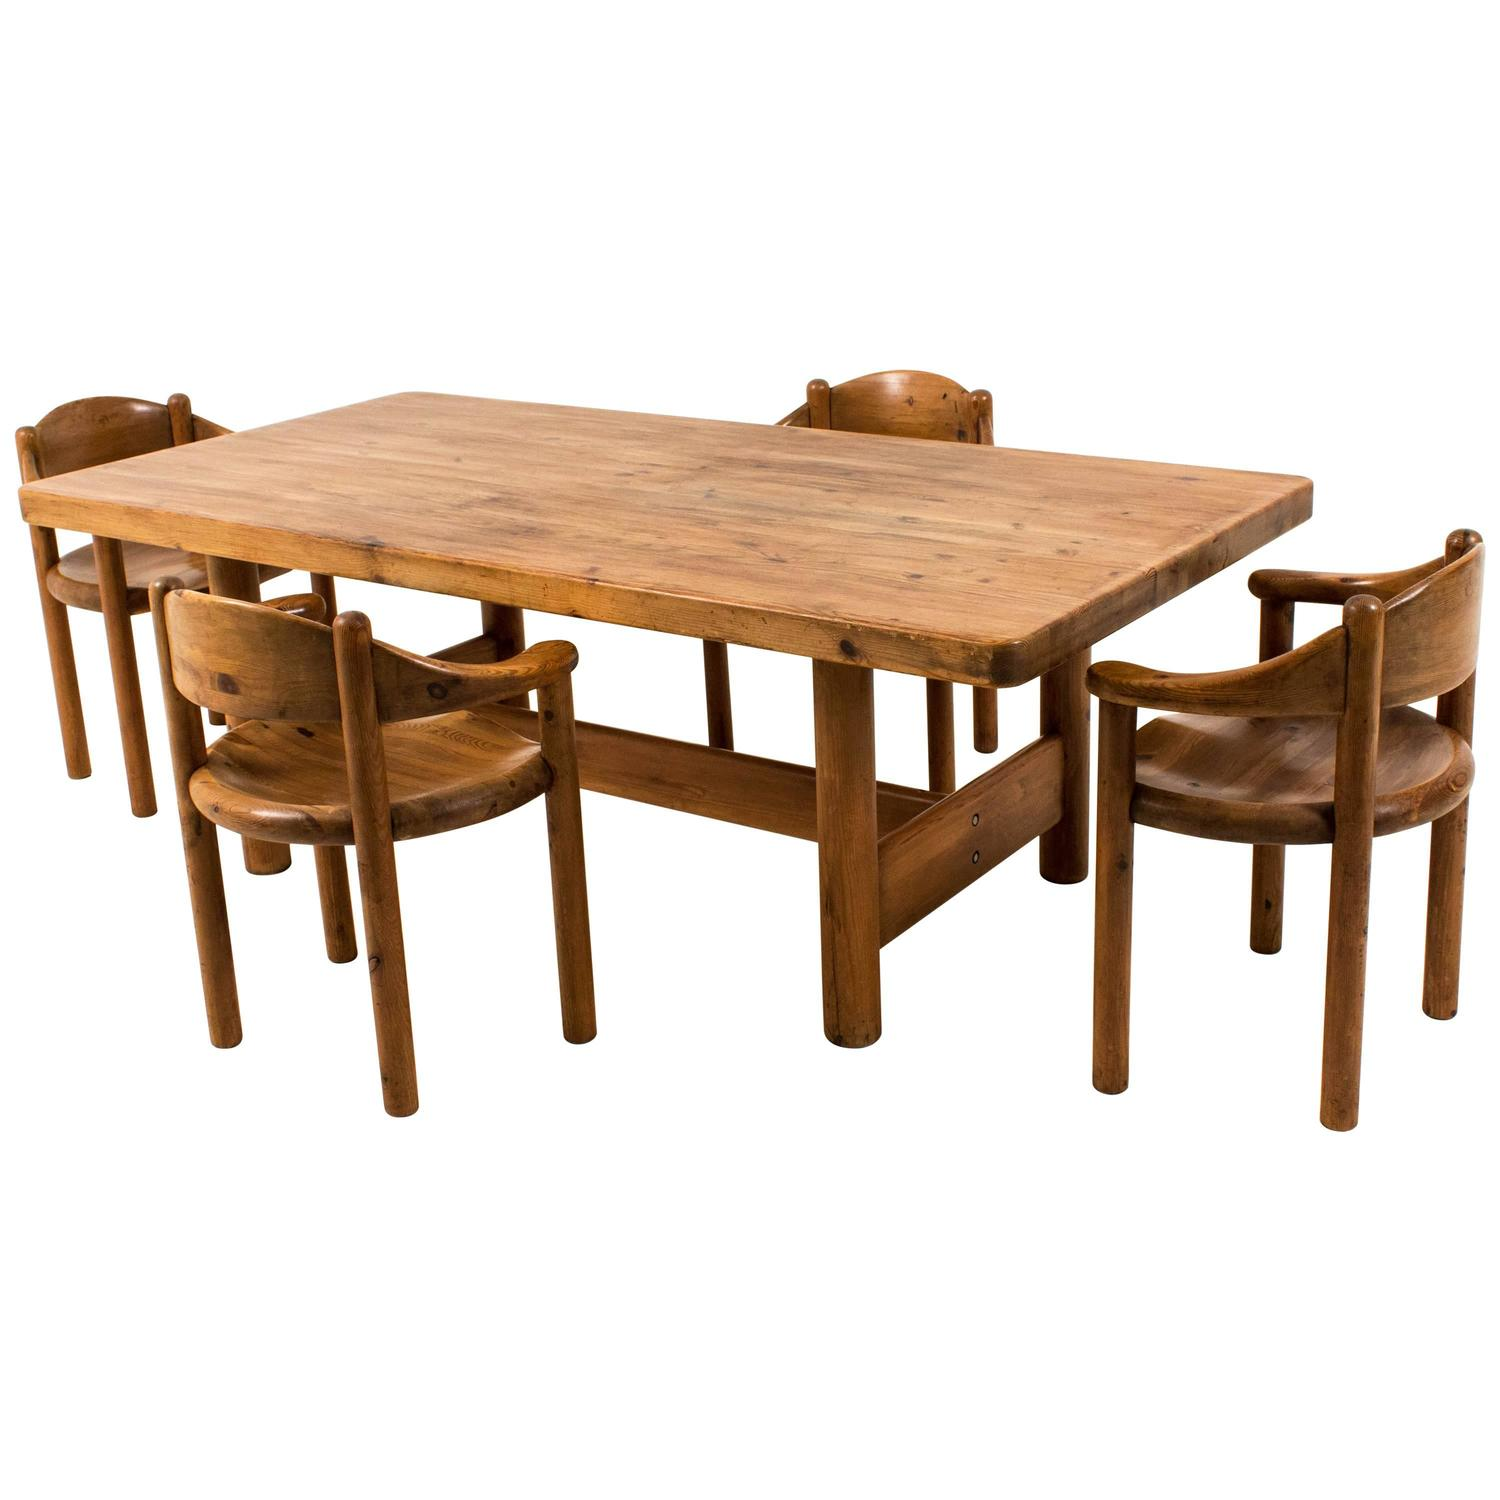 Large Modern Dining Room Tables: Rare And Large Mid-Century Modern Dining Room Table By Rainer Daumiller, 1970s For Sale At 1stdibs